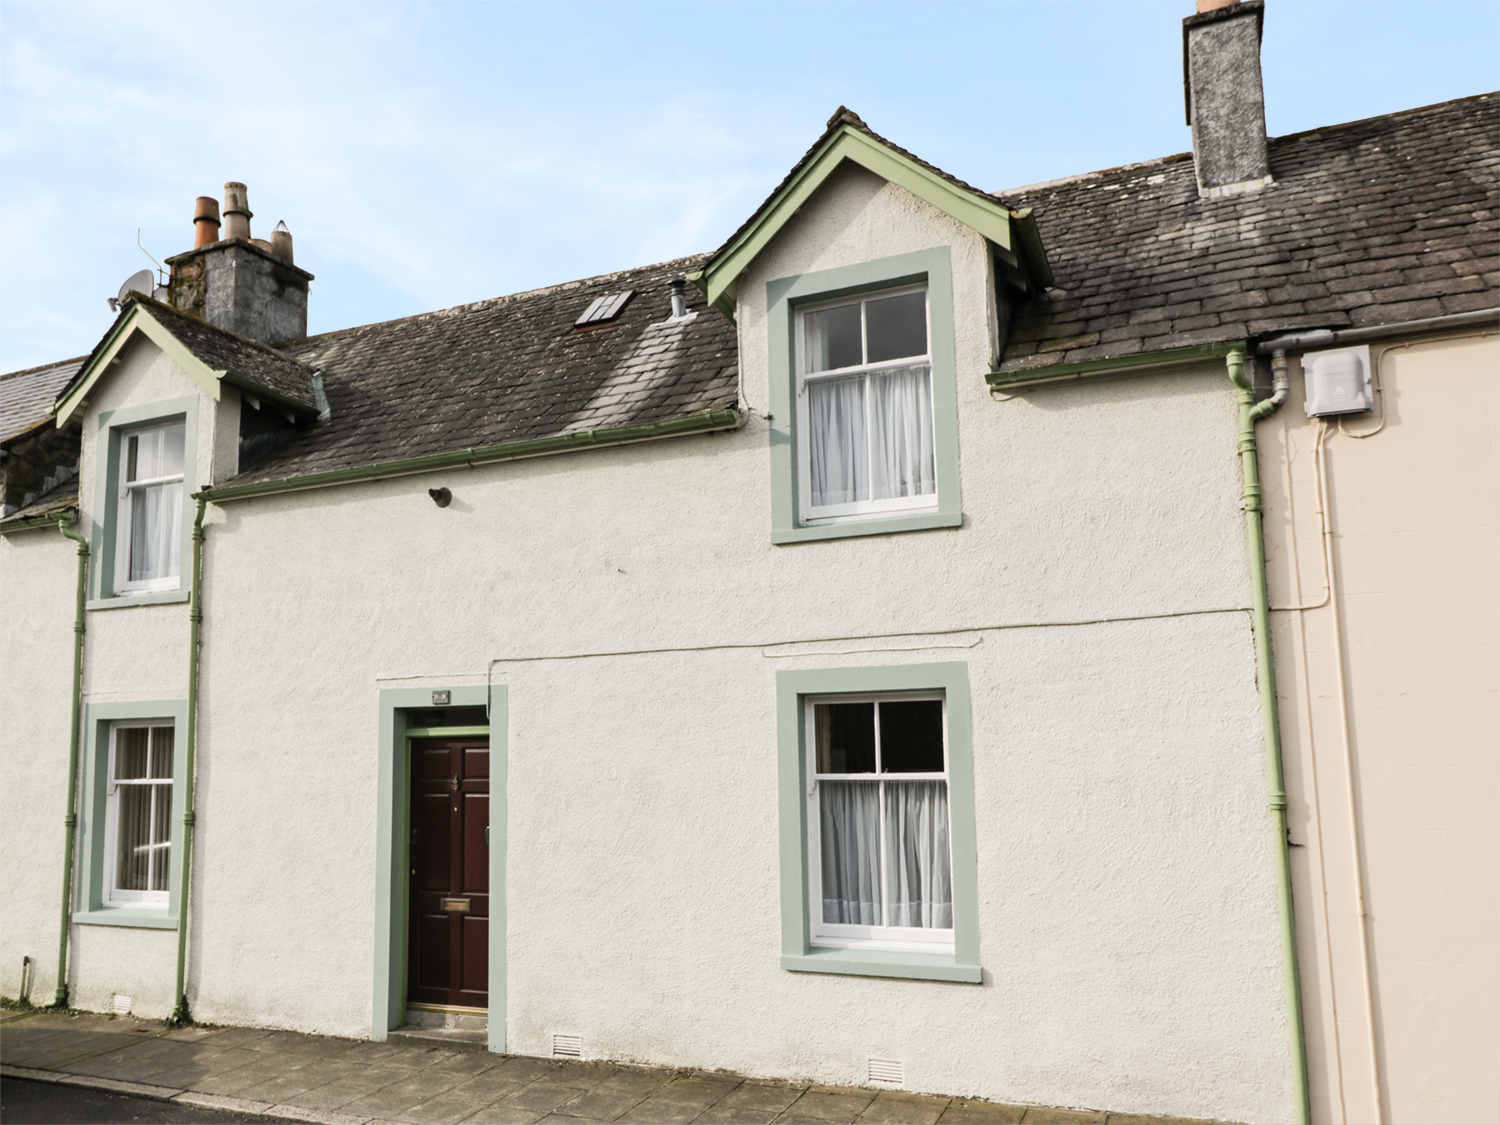 3 bedroom Cottage for rent in Kirkcudbright